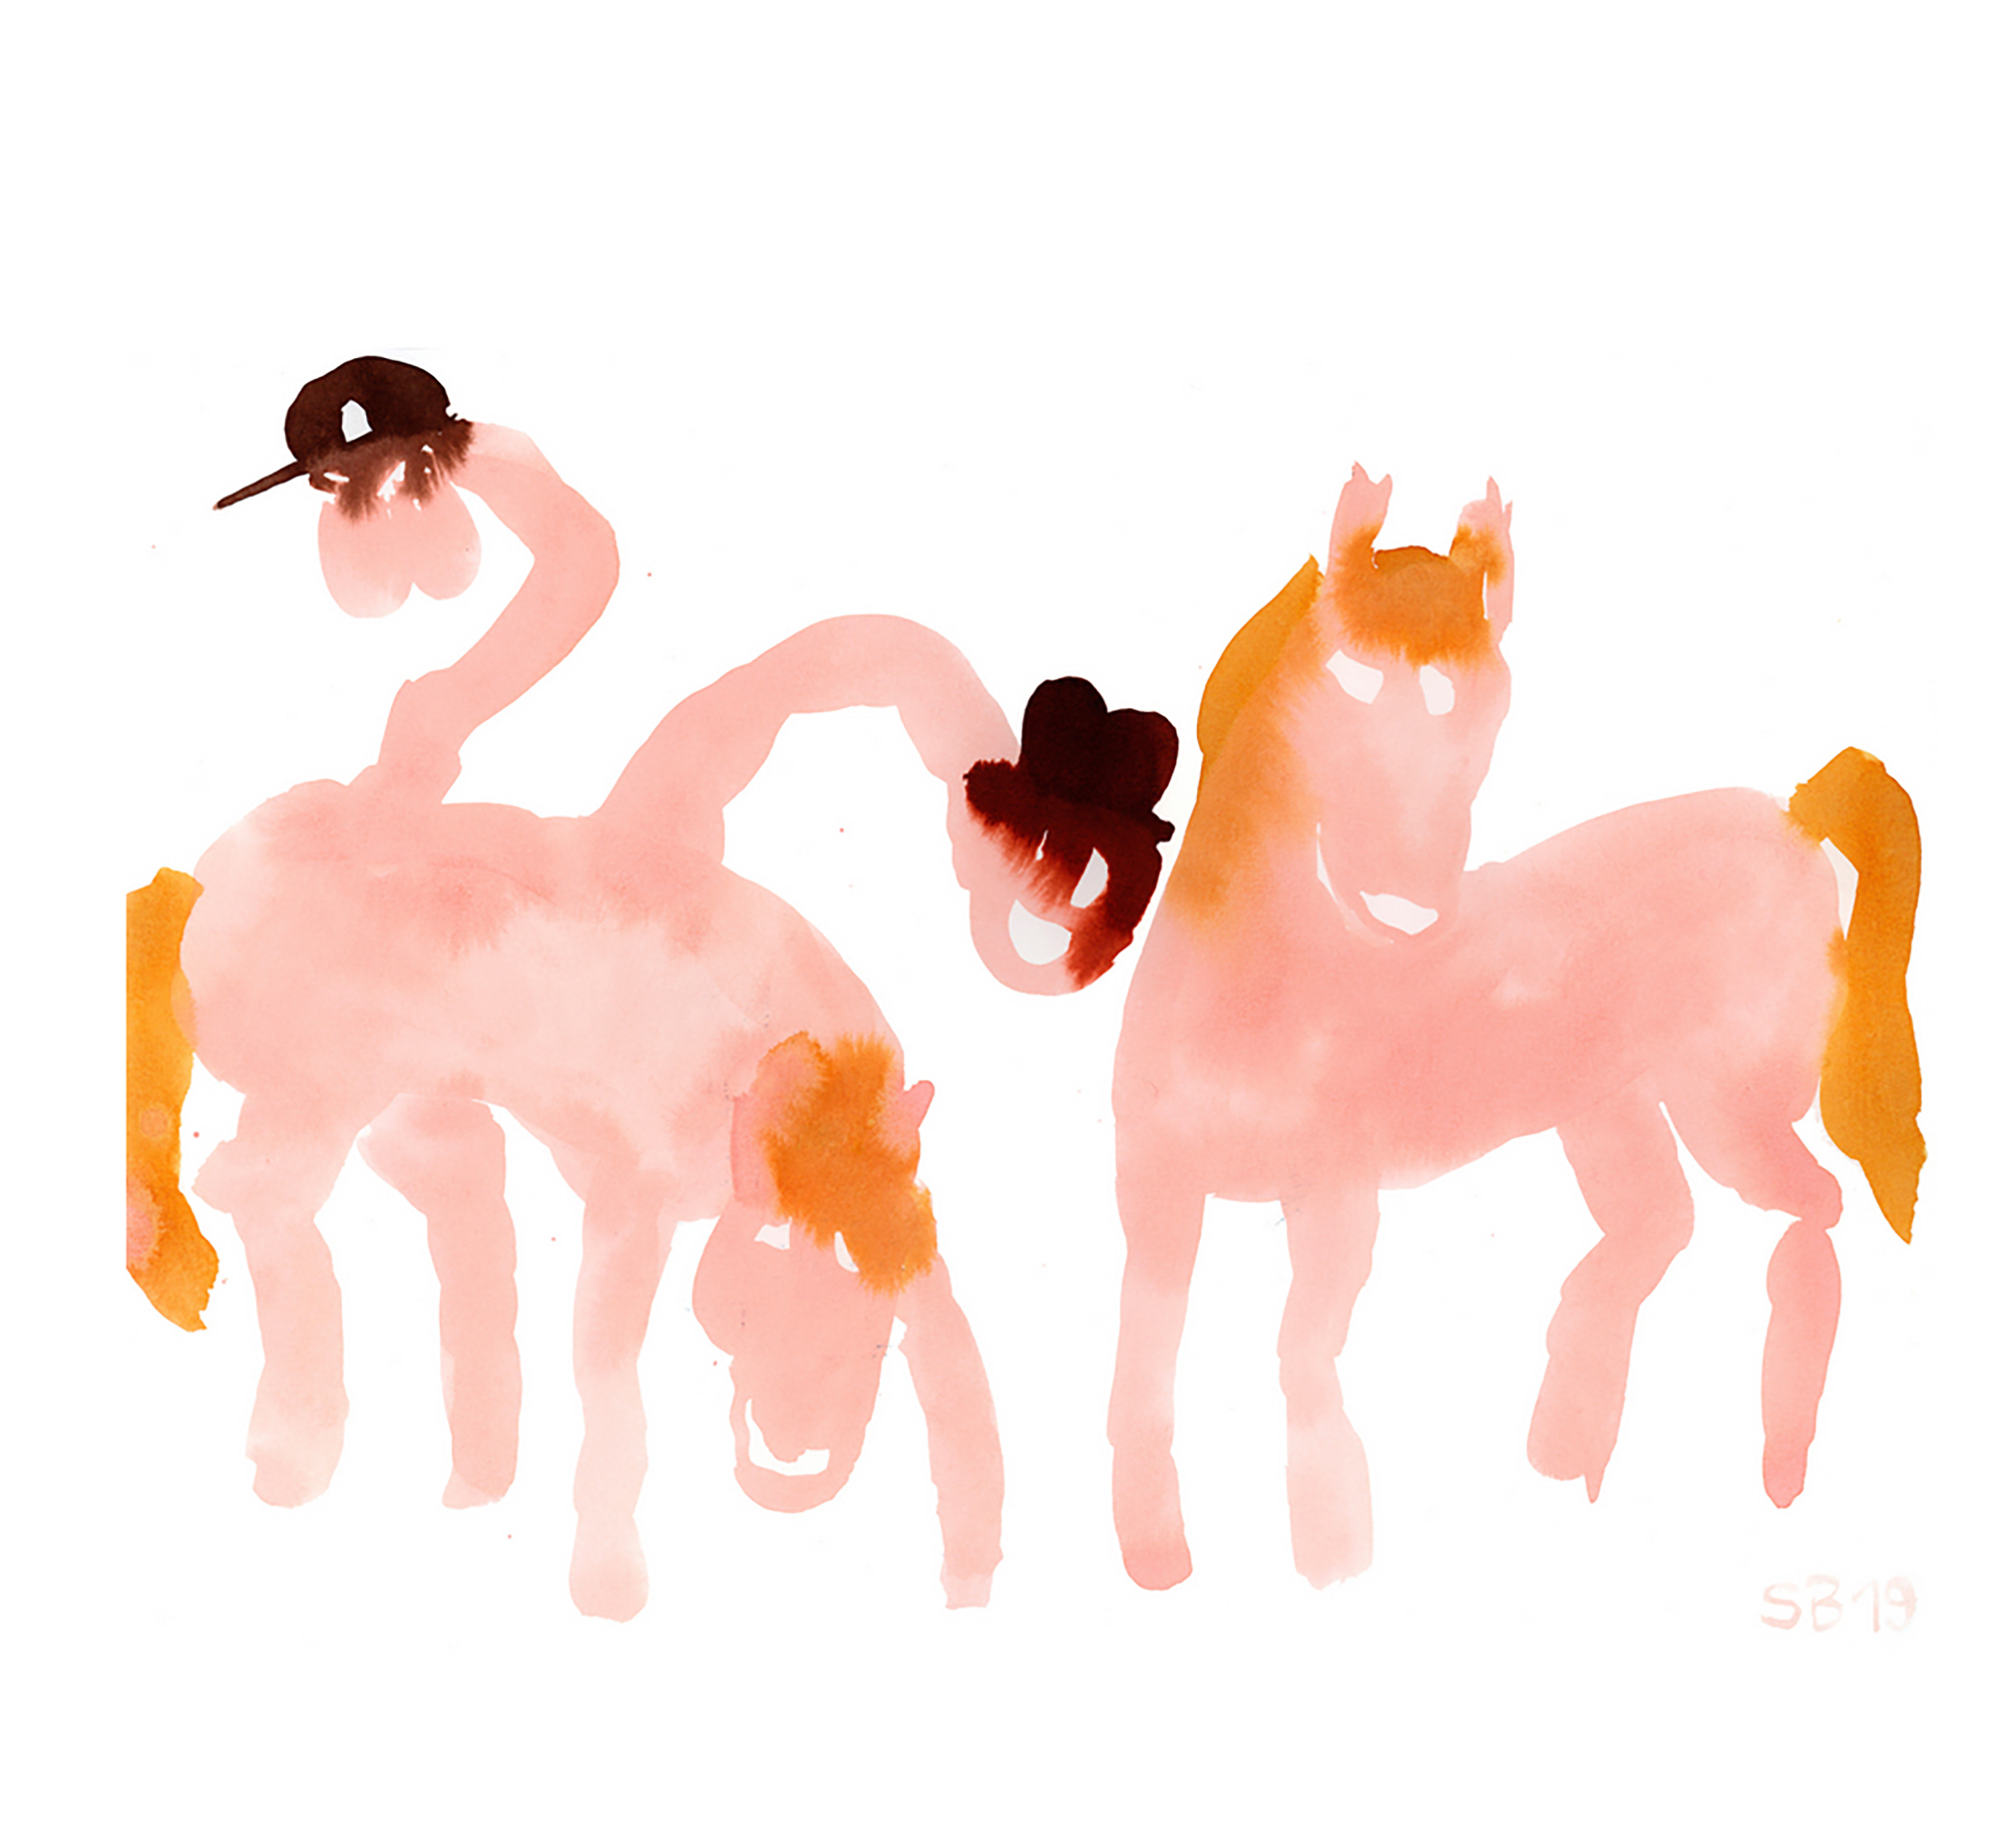 horses, group, painting, pink, smoking, funny, sarah bogner, artist